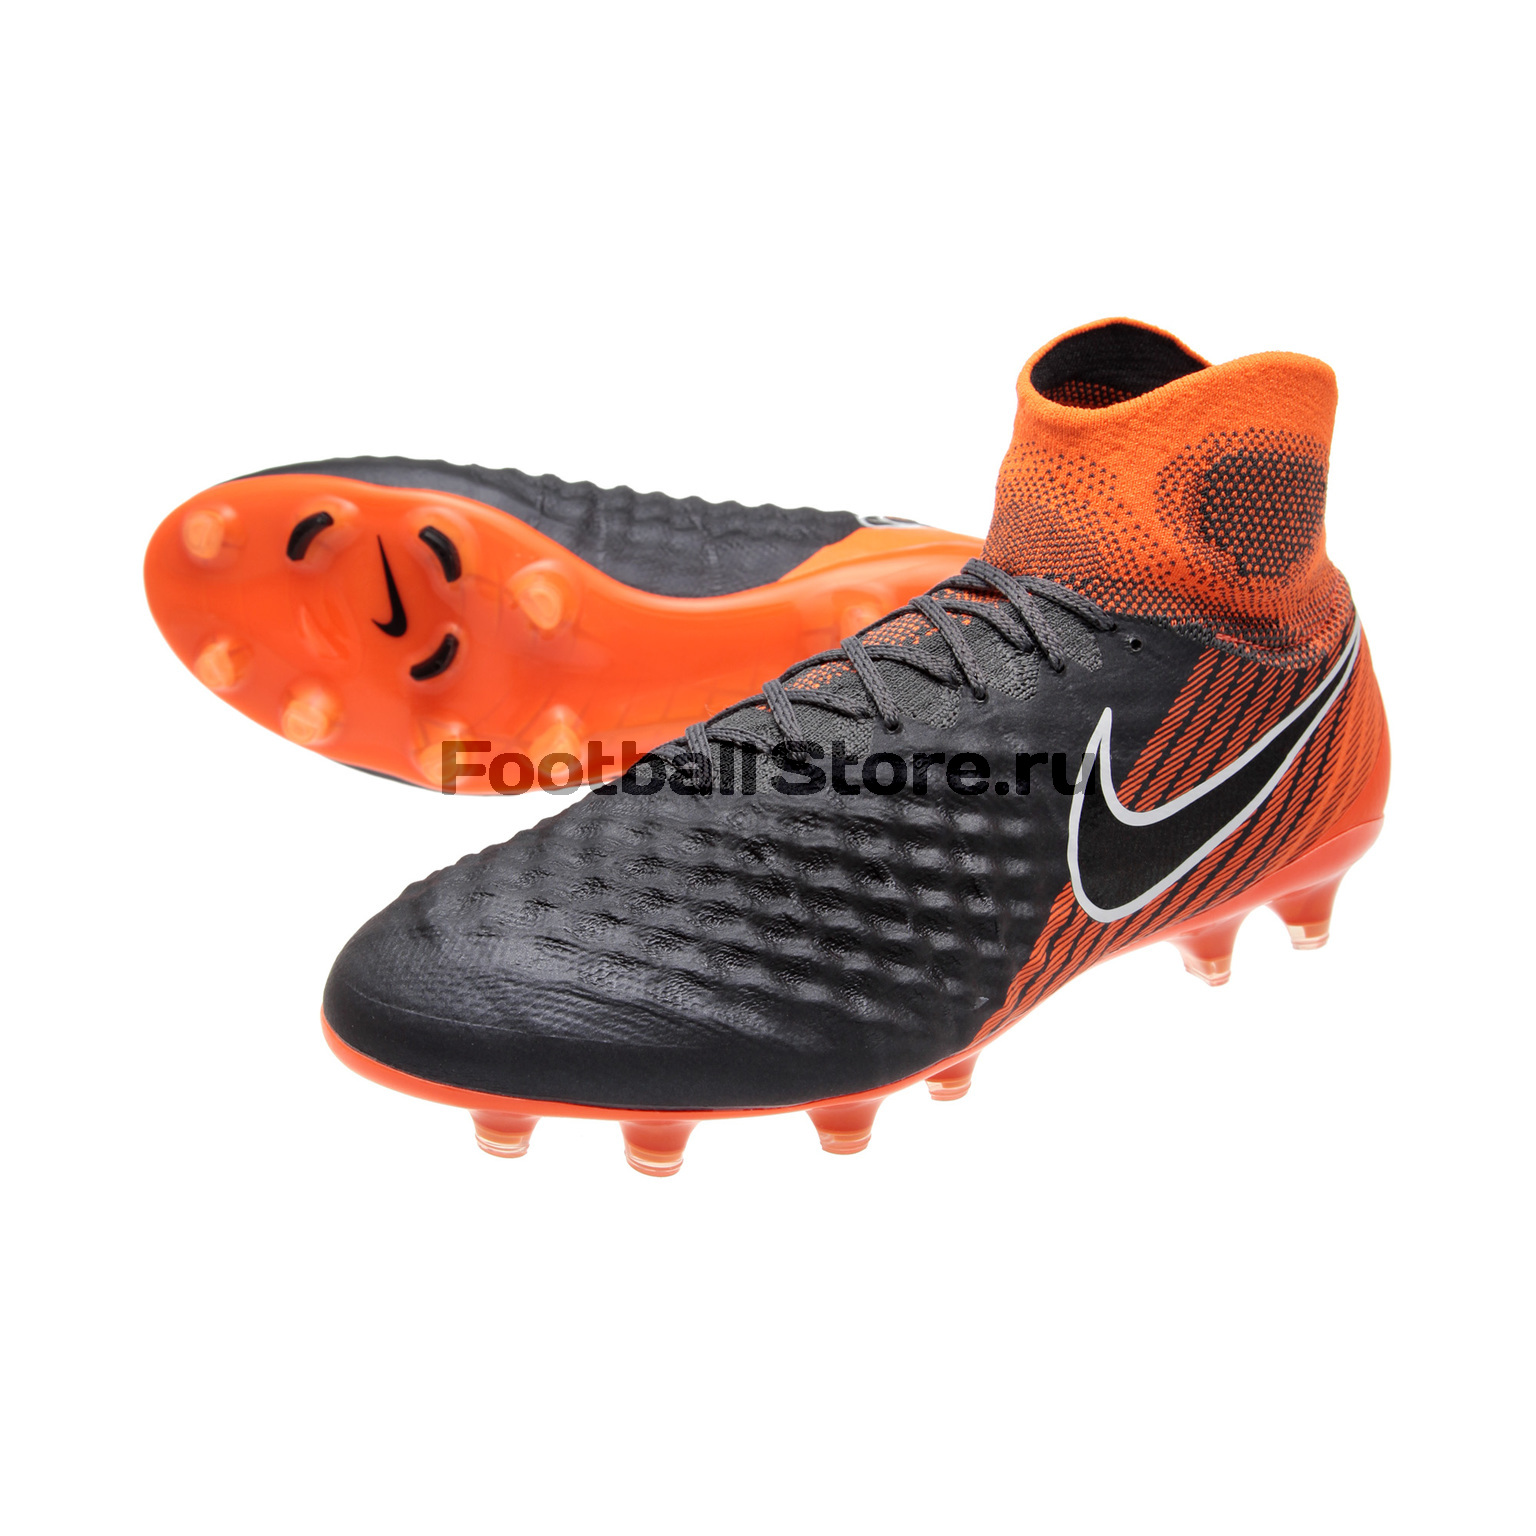 Бутсы Nike Magista Obra 2 Elite DF FG AH7301-080 чулок д щитков nike guard lock elite sleeve su12 se0173 011 m чёрный